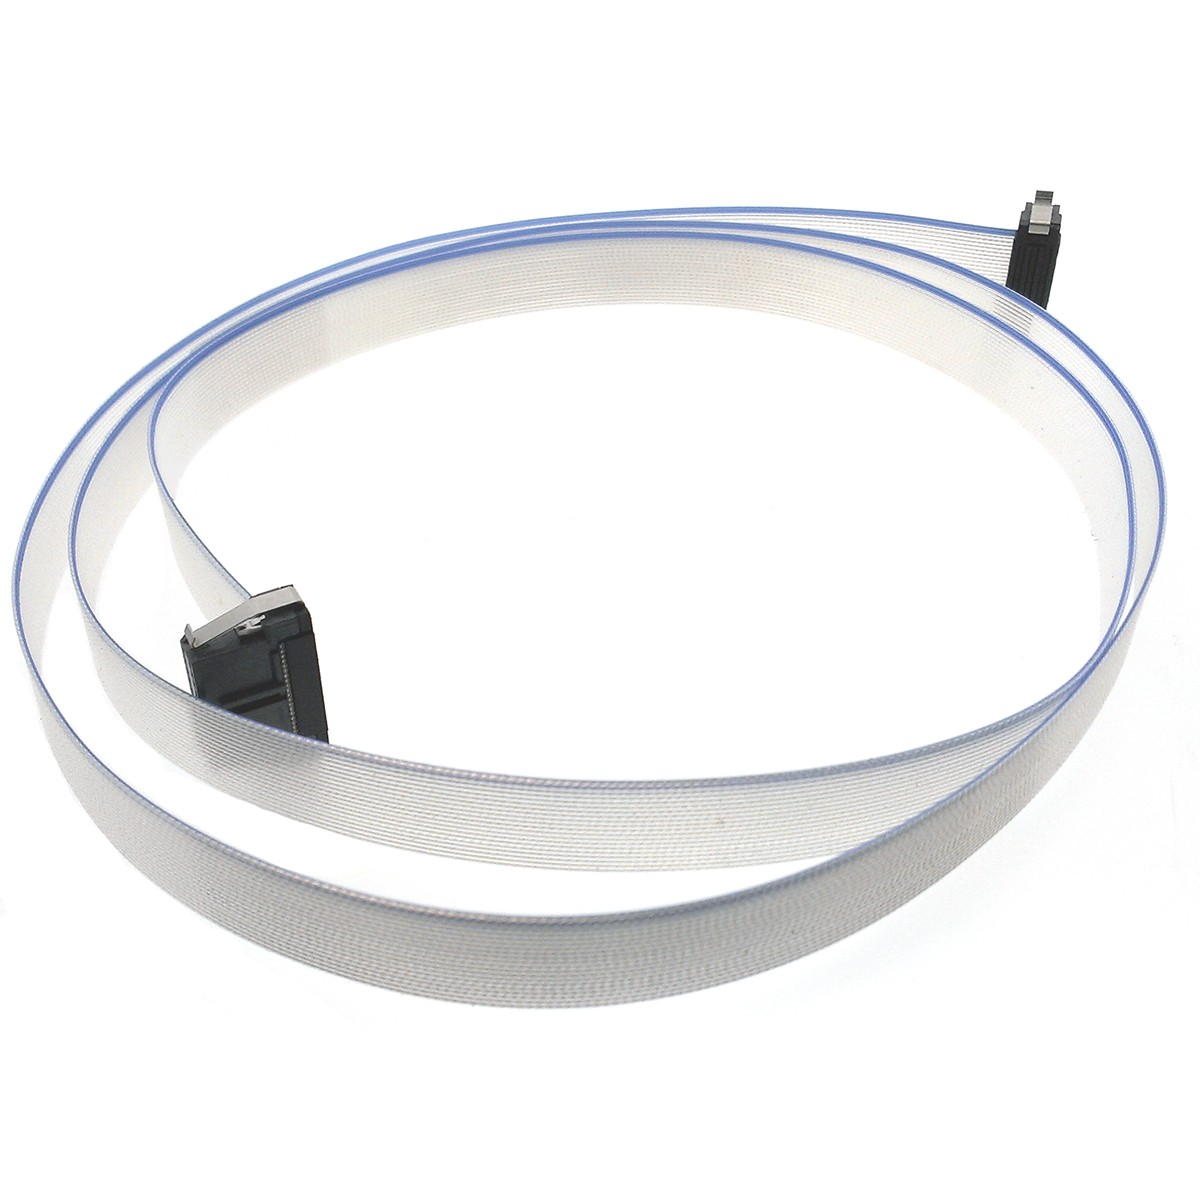 Solidscape 3Z Series Print Head Cable